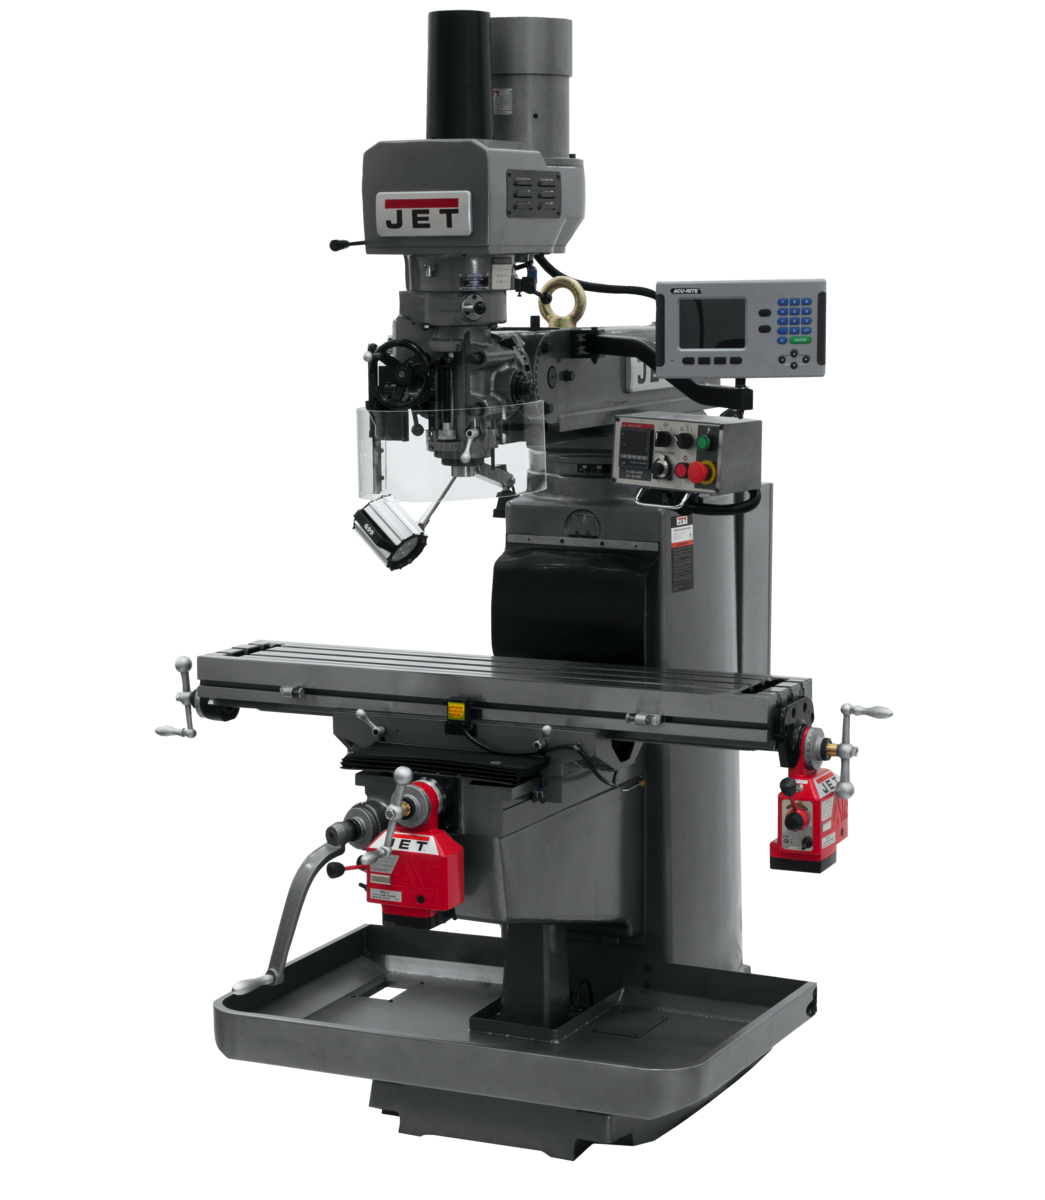 JTM-1050EVS2/230 Mill With 3-Axis Acu-Rite 203 DRO (Quill) With X and Y-Axis Powerfeeds and Air Powered Draw Bar